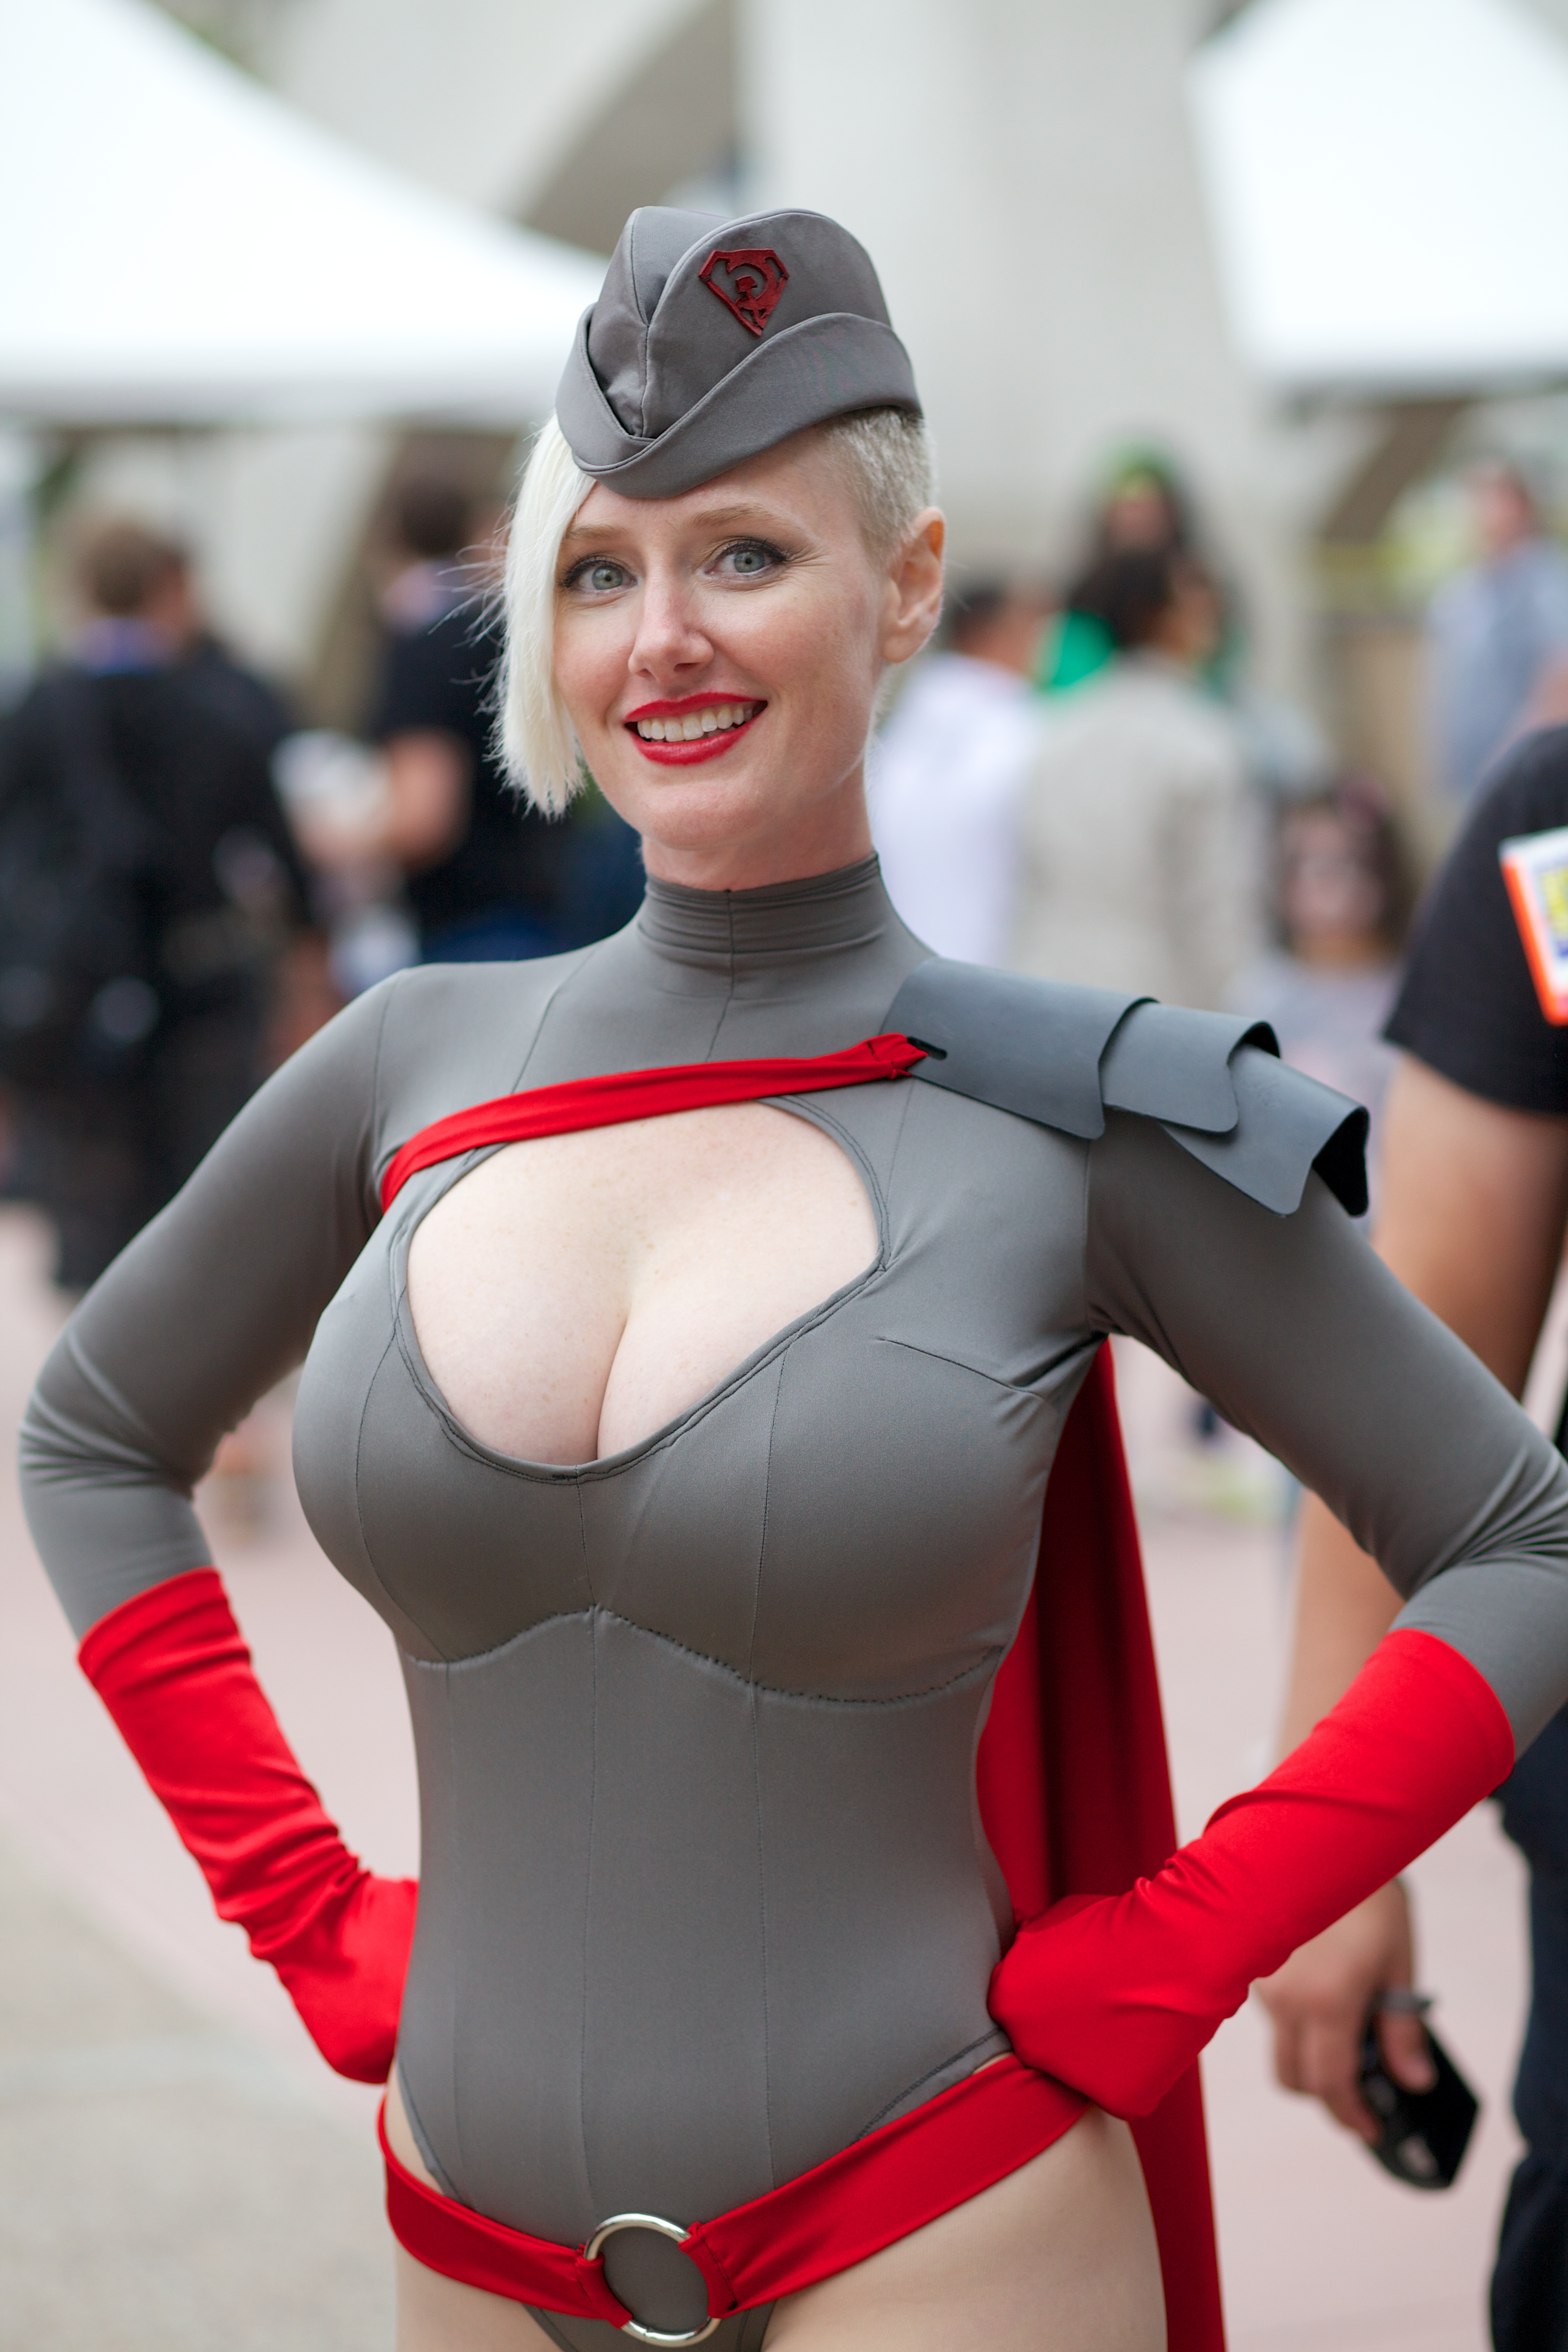 Woman cosplay boobs nude gallery